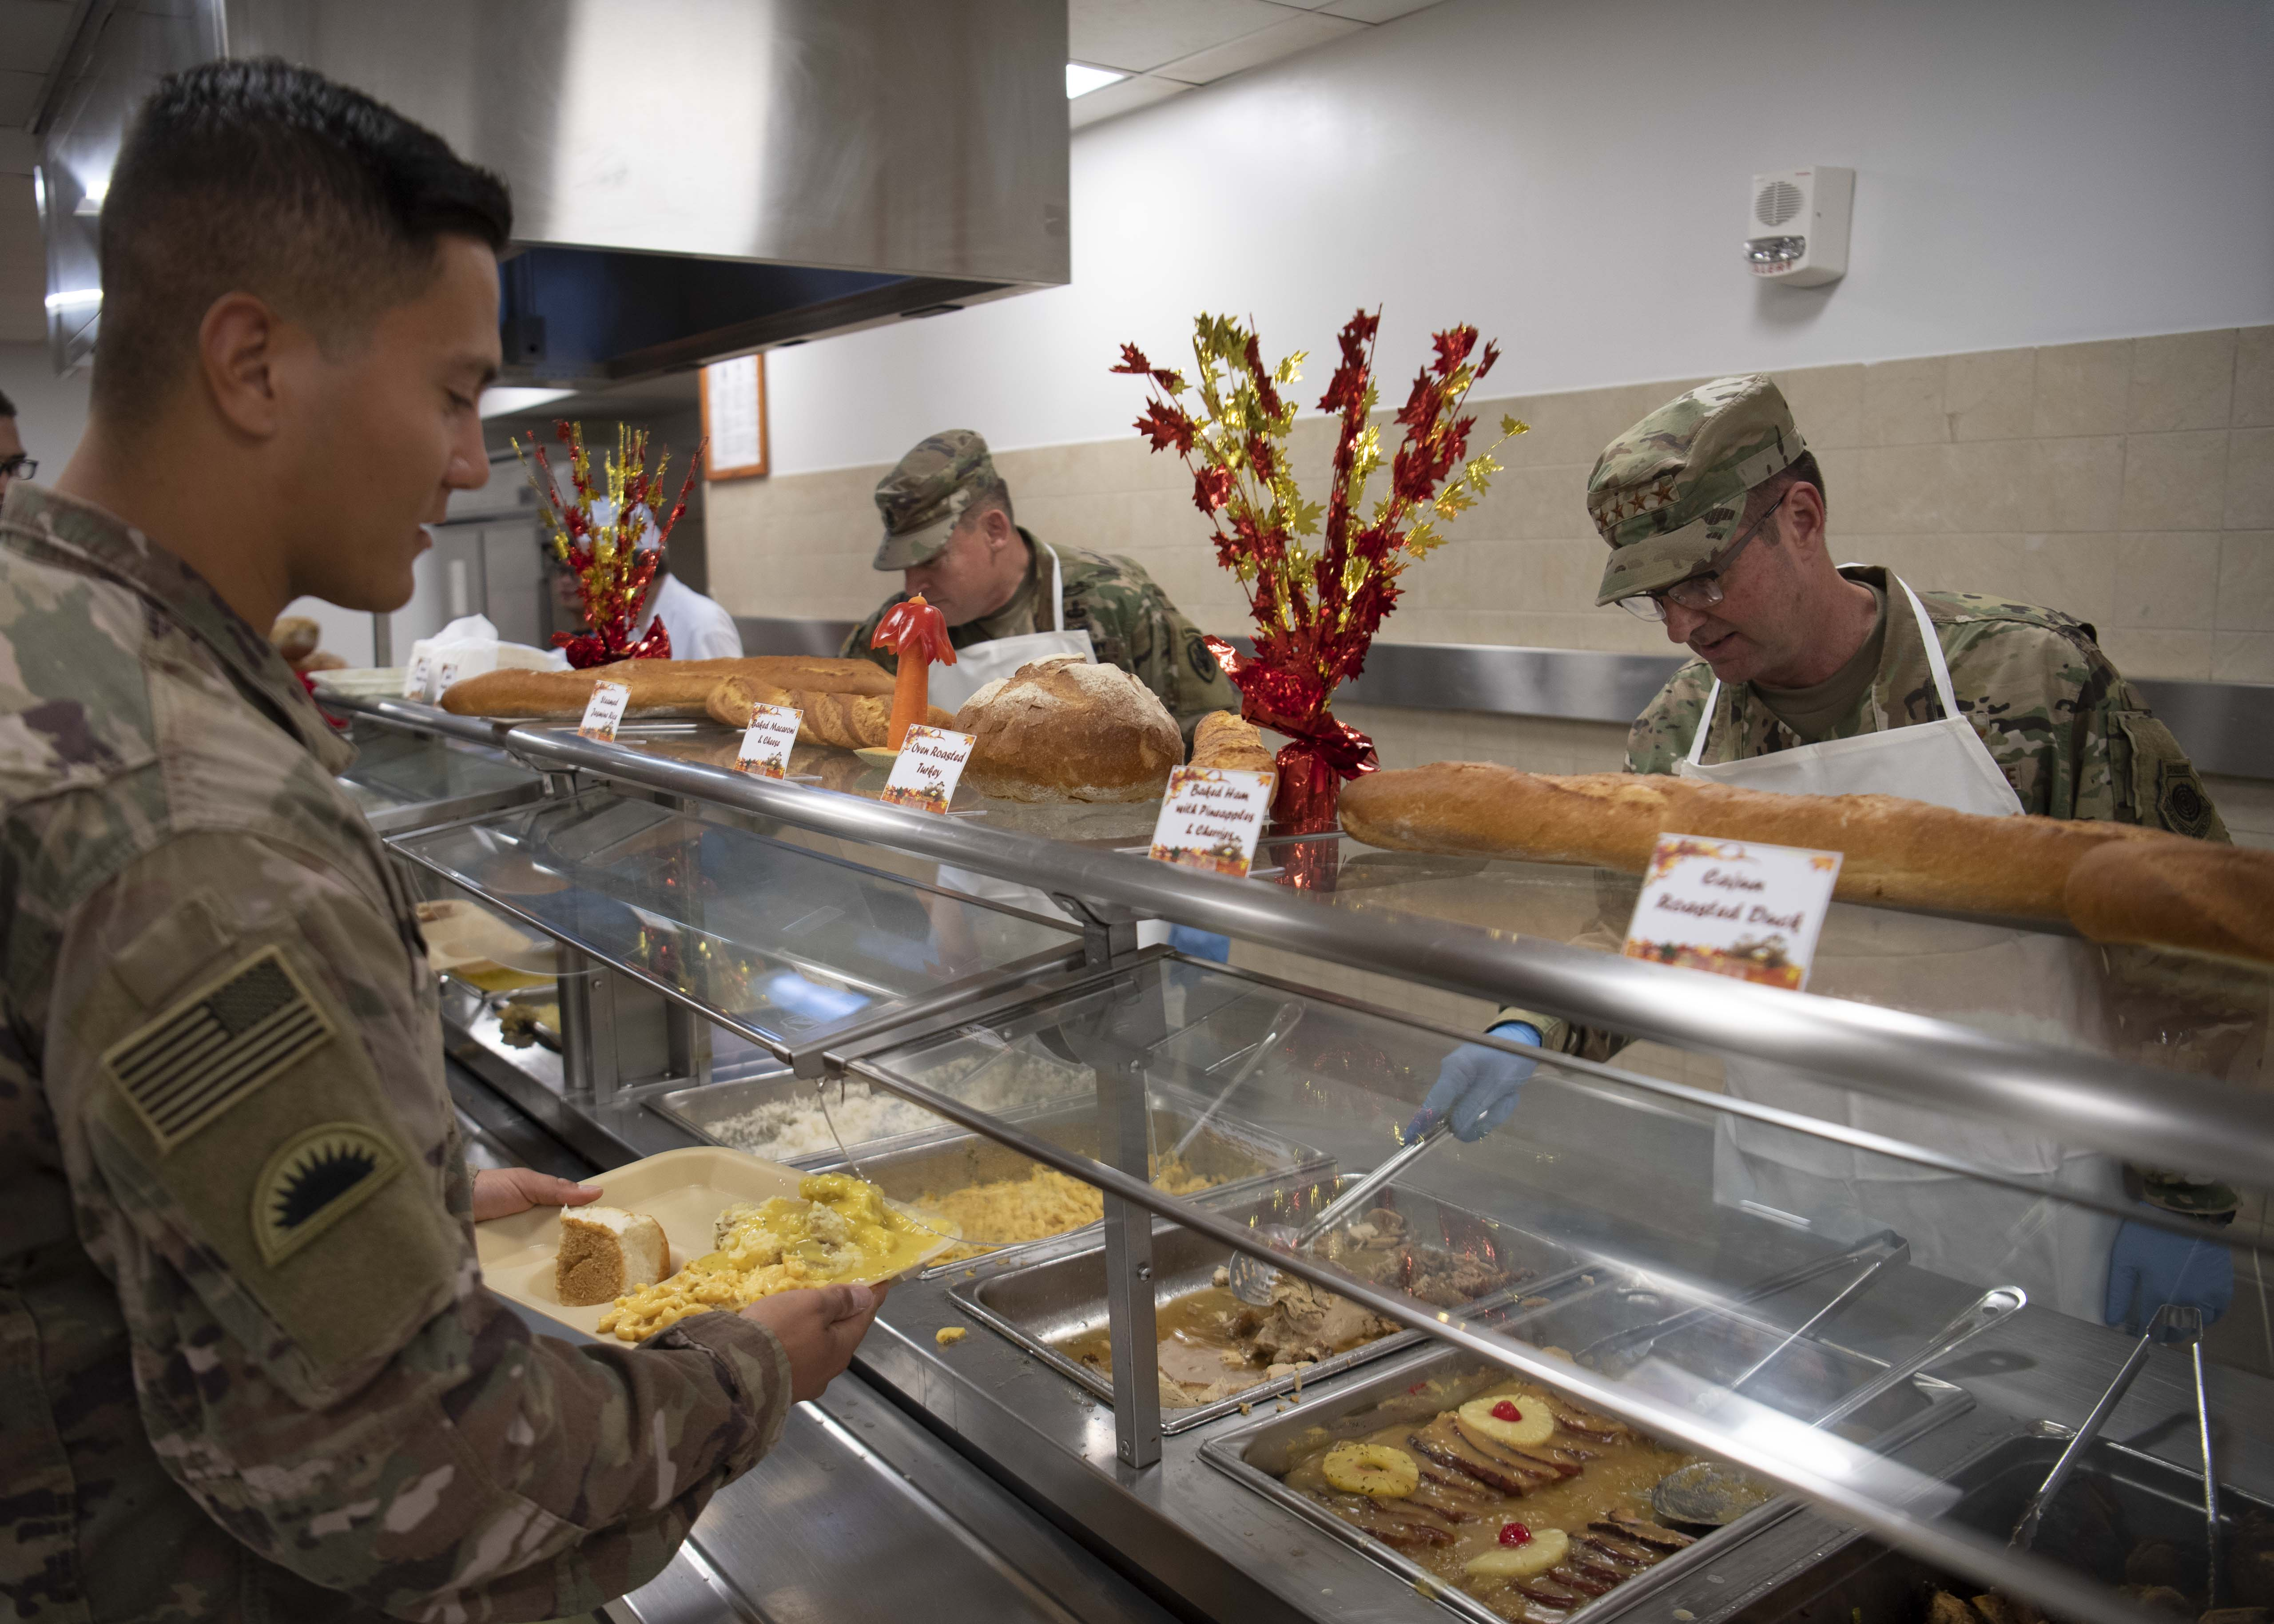 U.S. Air Force Gen. Joseph Lengyel, chief, National Guard Bureau, (right), serves Thanksgiving dinner to a U.S. soldier at Camp Lemonnier, Djibouti, Nov. 28, 2019. Lengyel visited Camp Lemonnier to meet with deployed National Guardsmen and other service members. (U.S. Air Force photo by Staff Sgt. J.D. Strong II)